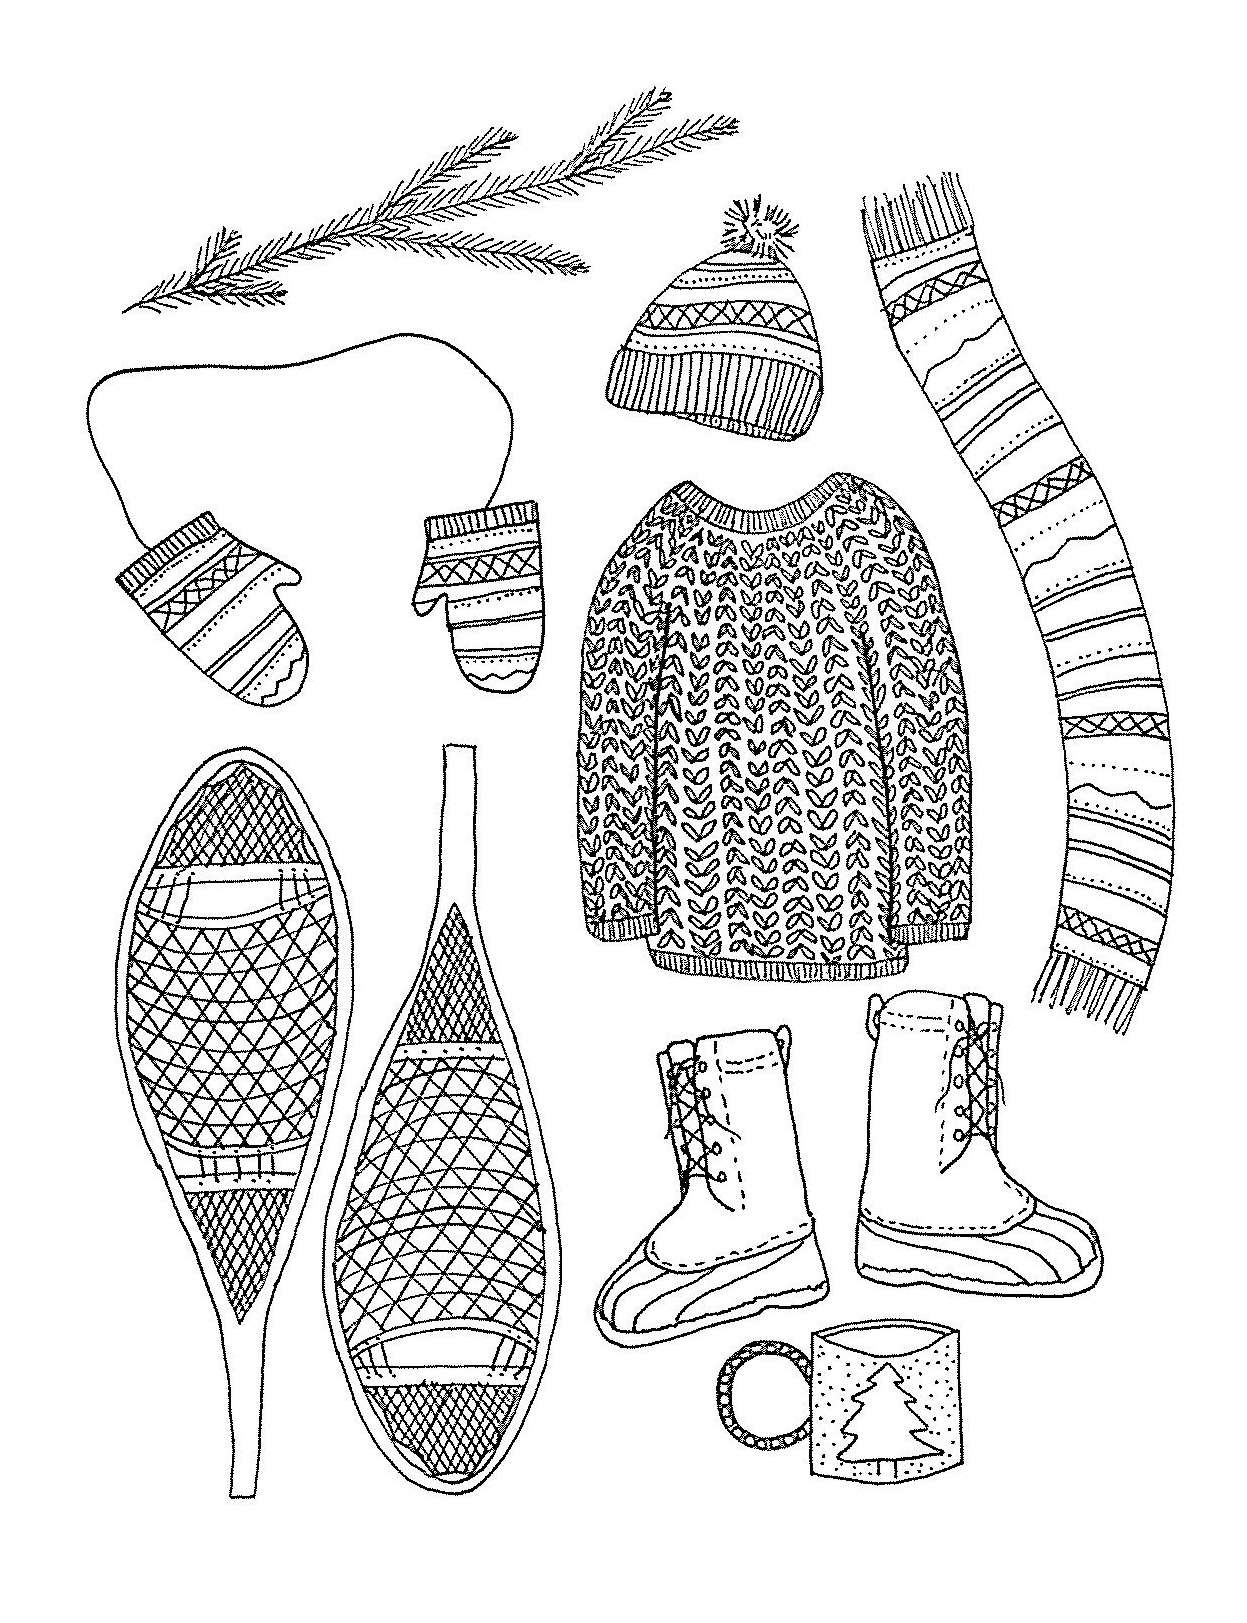 Winter items - ink on paper